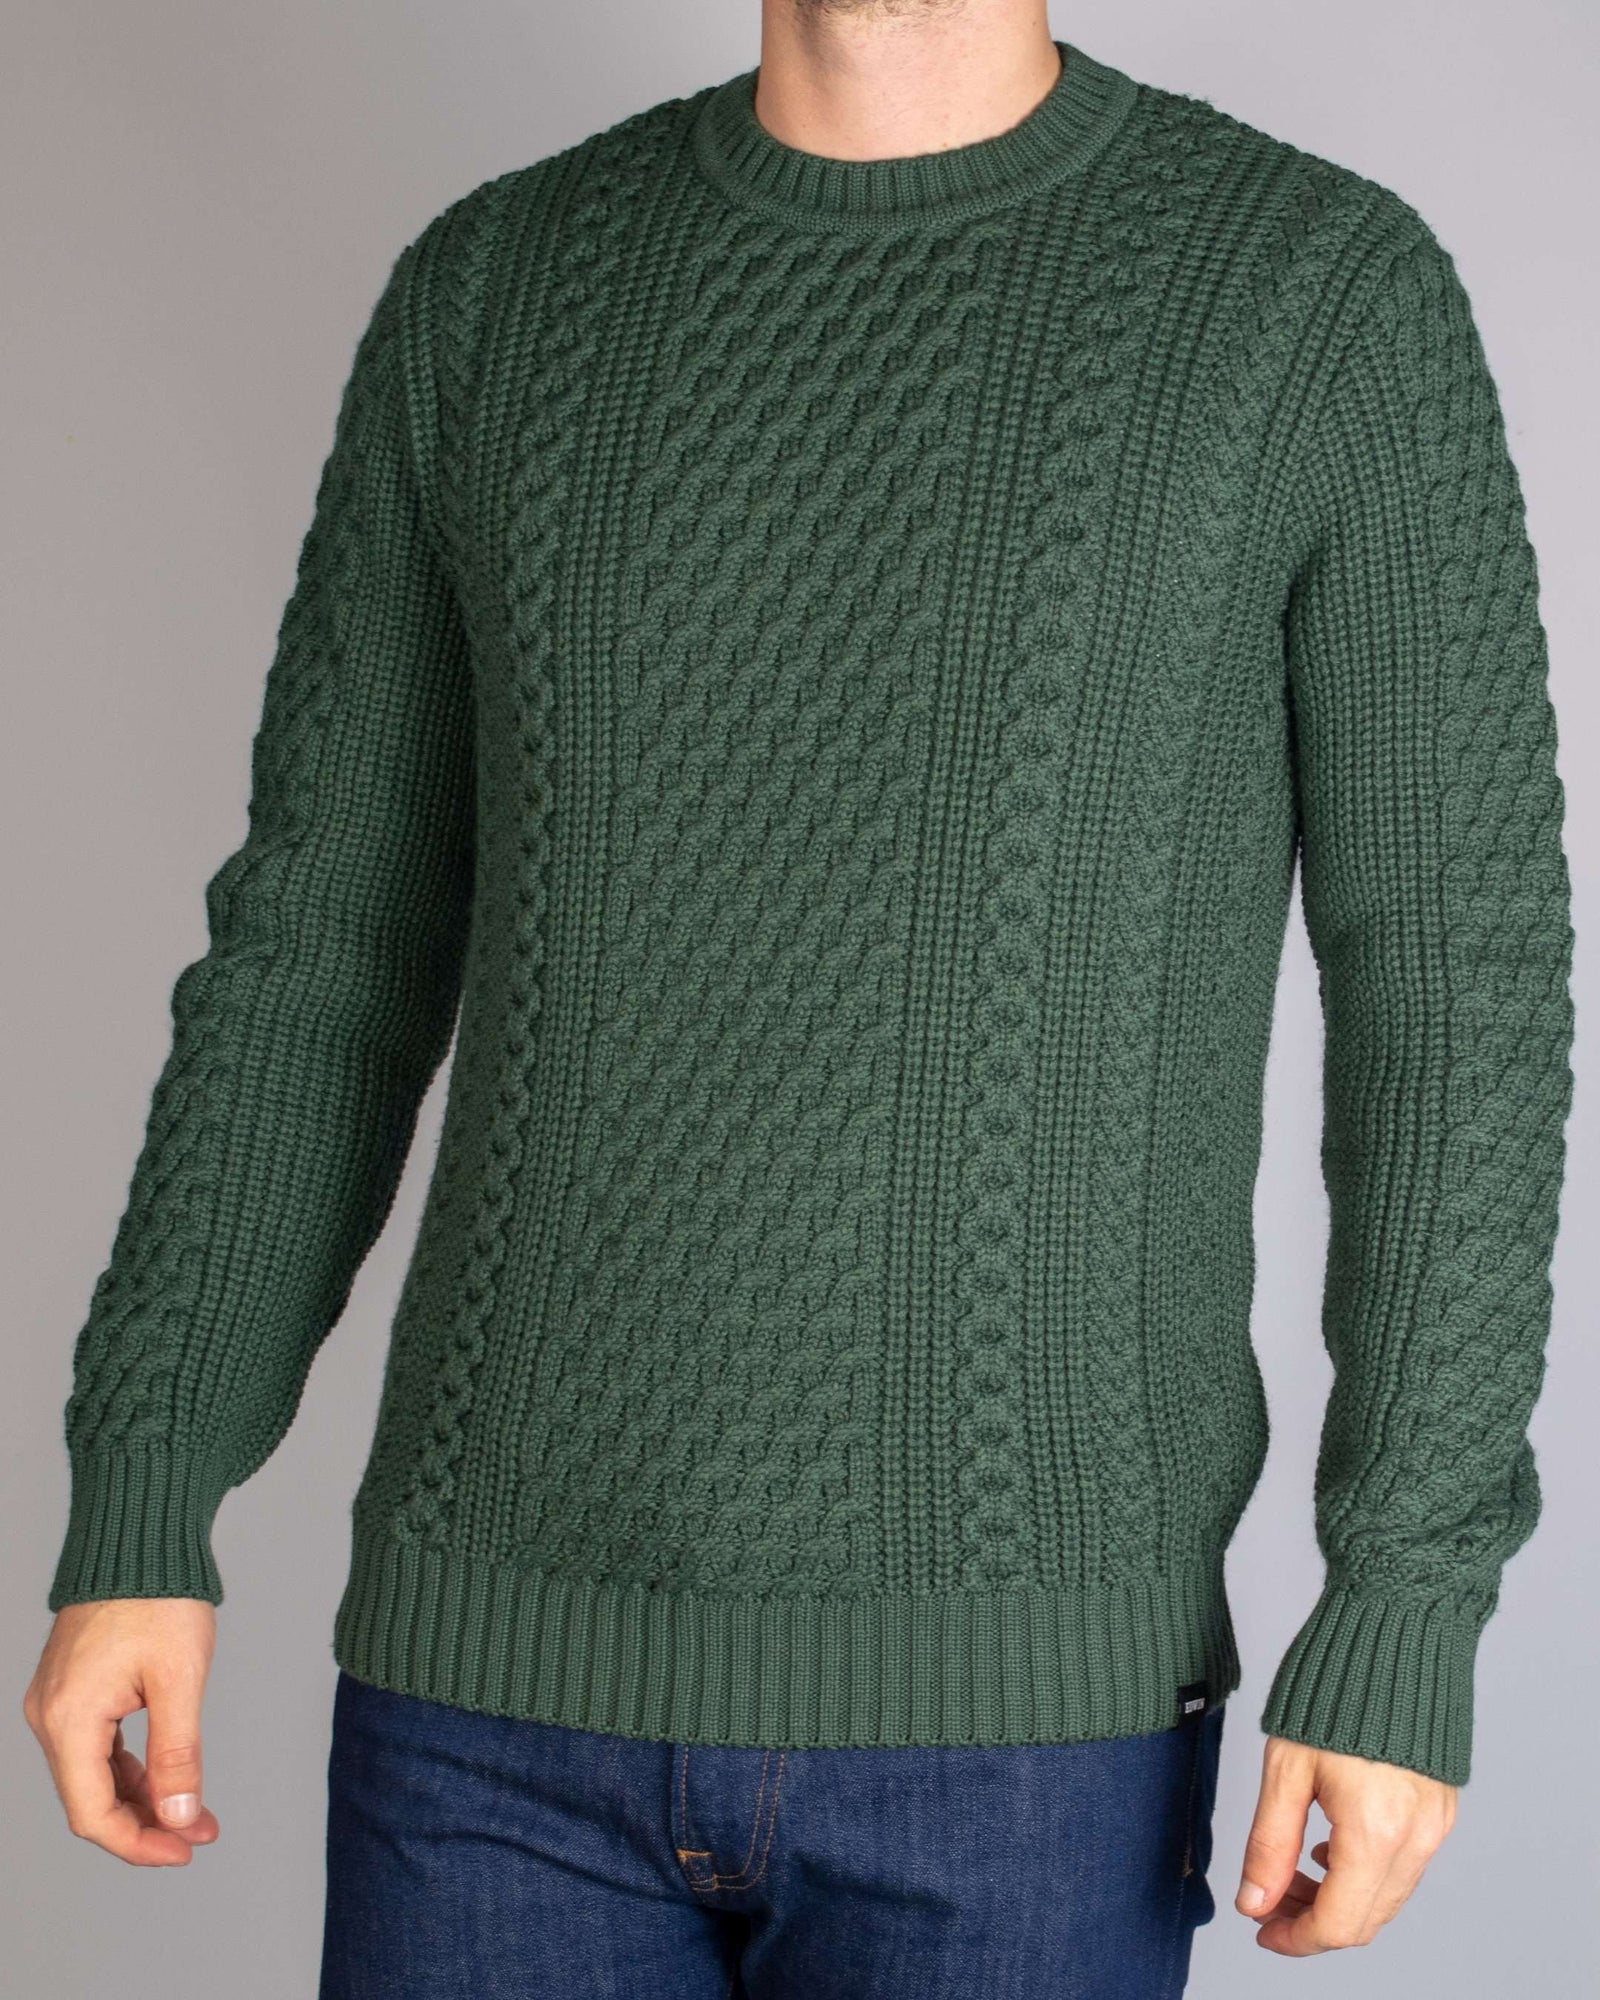 Edwin Sycamore United Knitted Jumper - Revolver Menswear Bawtry